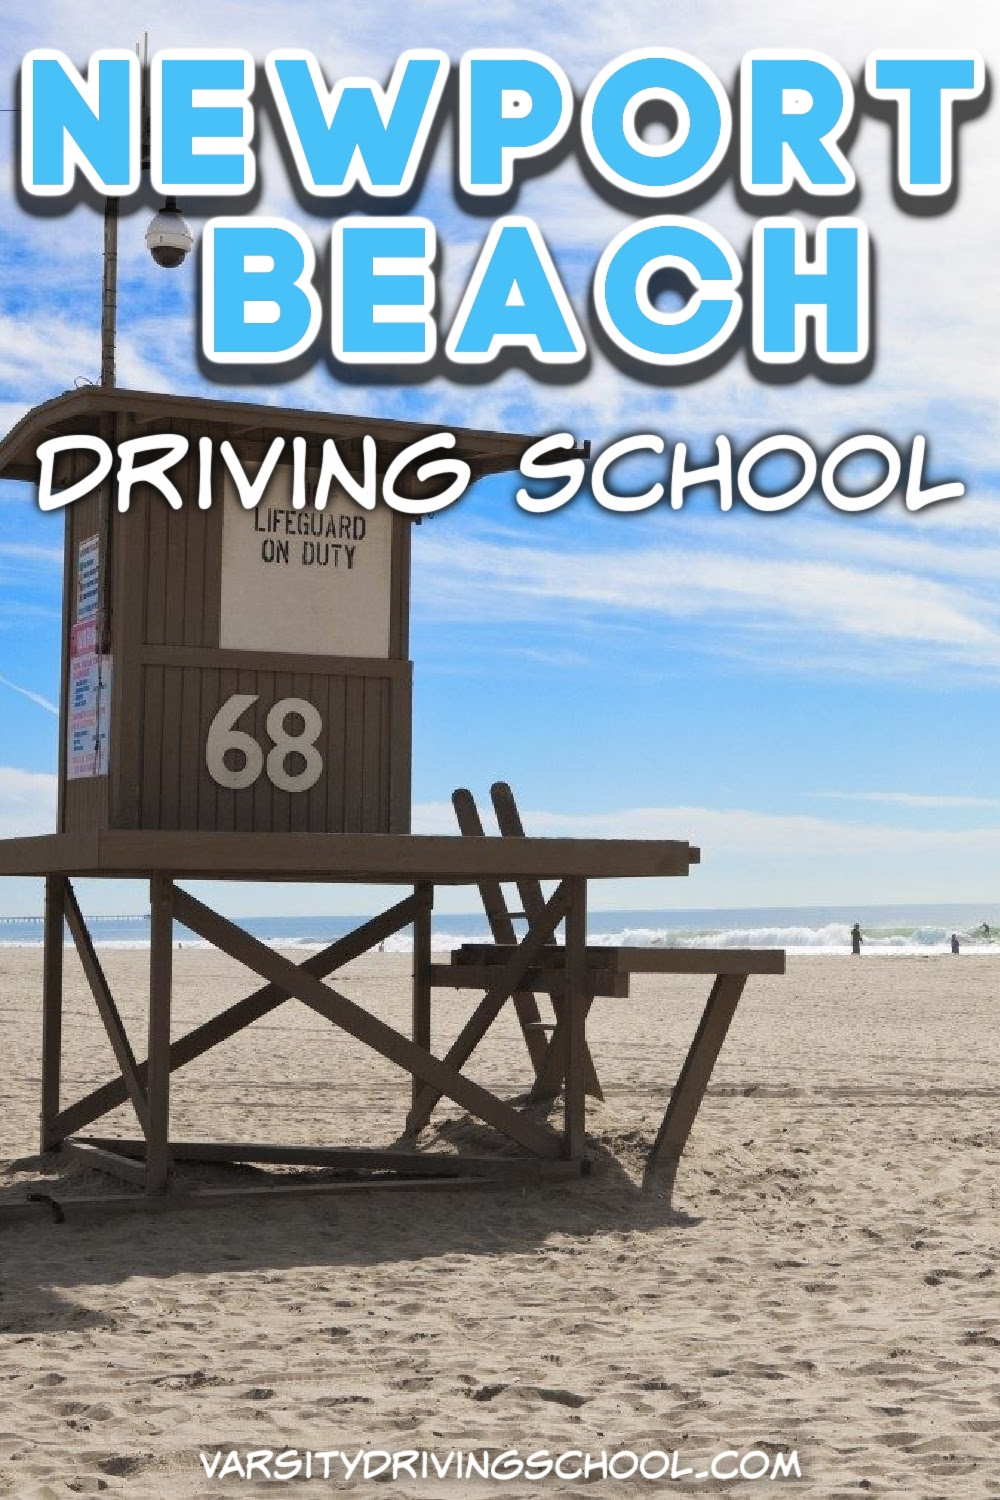 You can access the best driving lessons in Newport Beach at Varsity Driving Academy, the best Newport Beach driving school which offers driver's ed in Orange County for teens and adults.